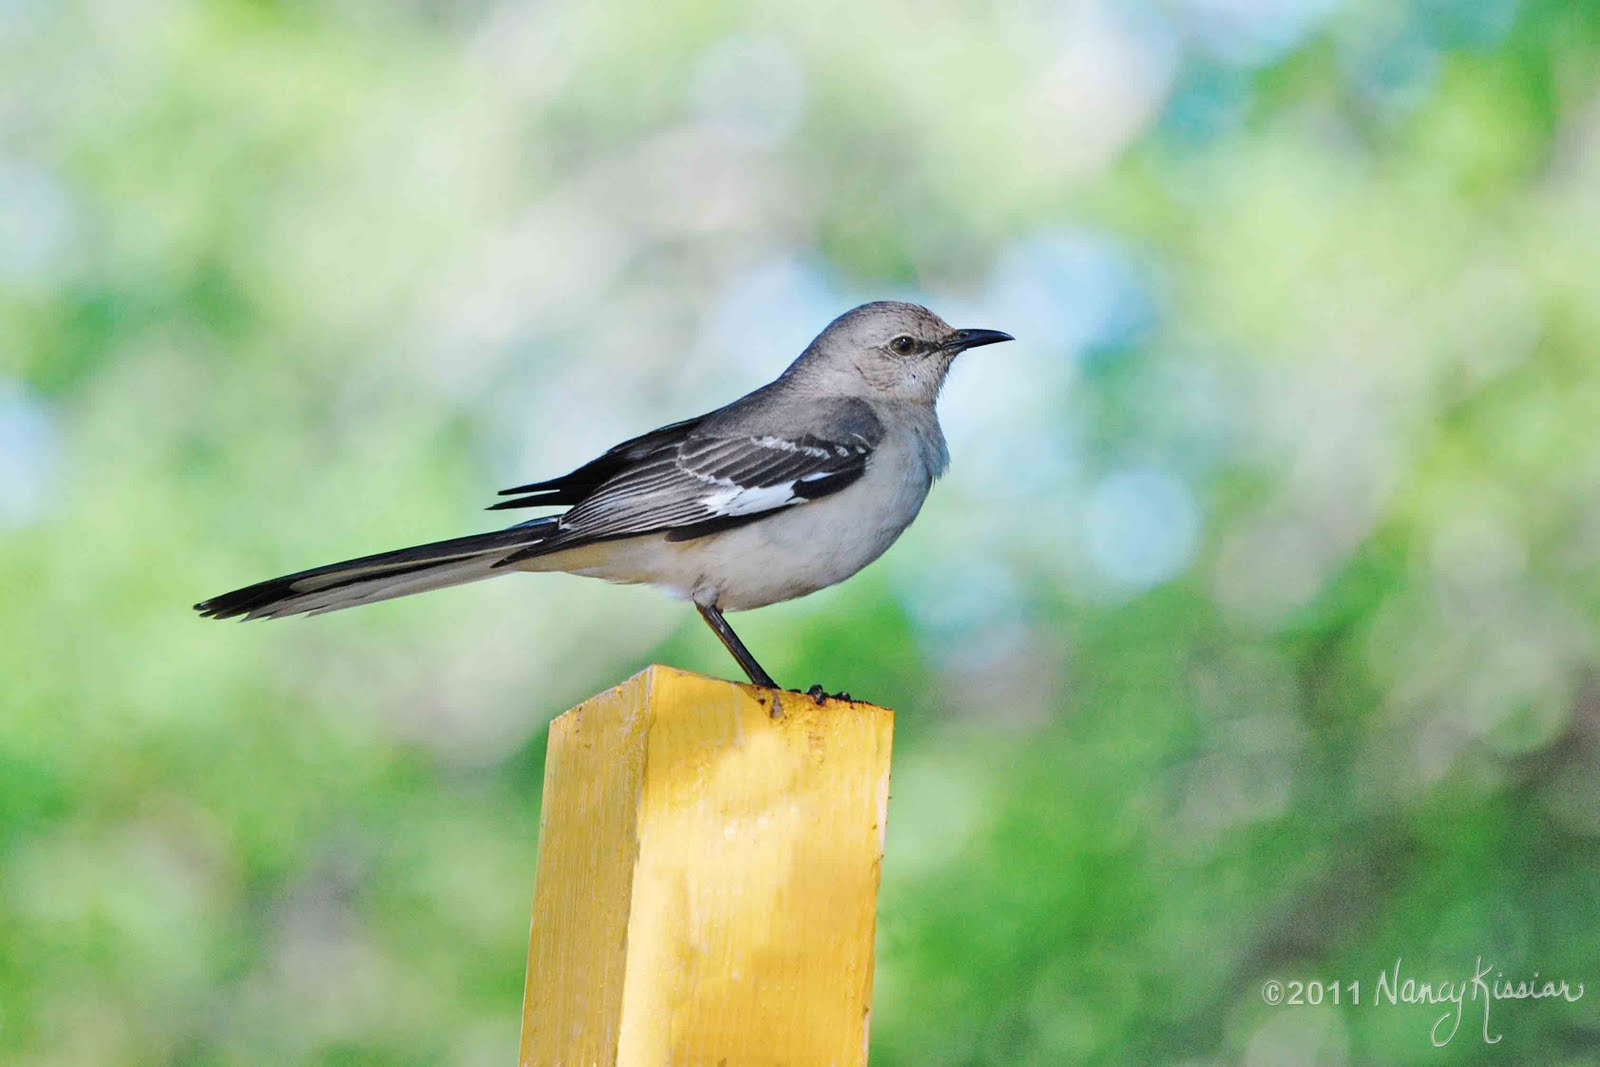 the official state bird of texasthe mockingbird